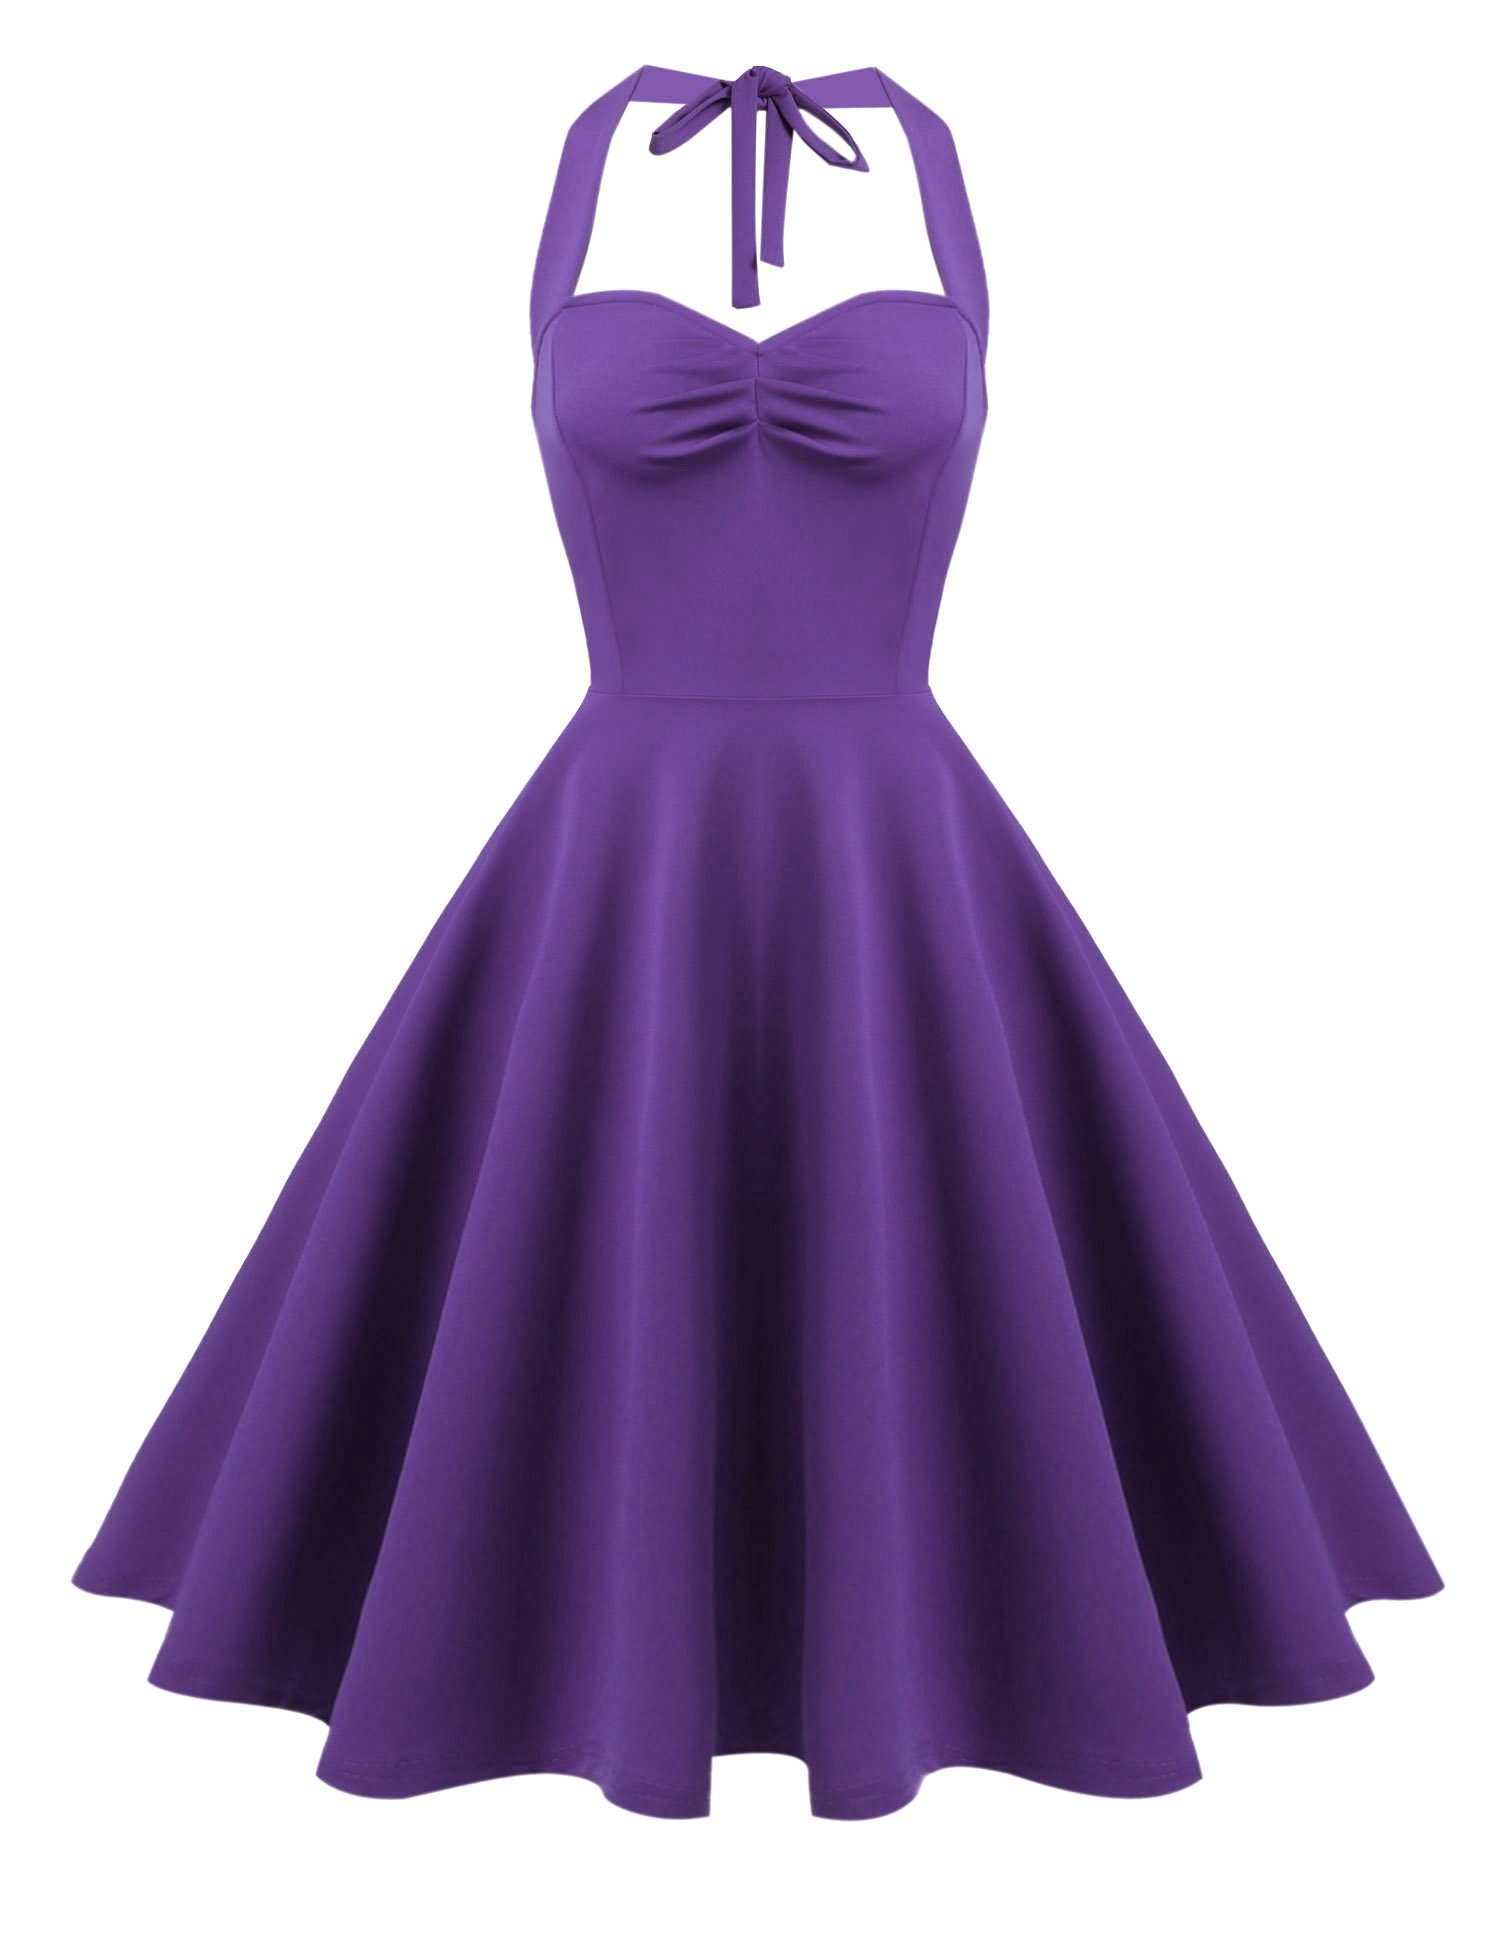 Hotouch Women Summer Style Gown Party Cocktail Dress(Purple XL)